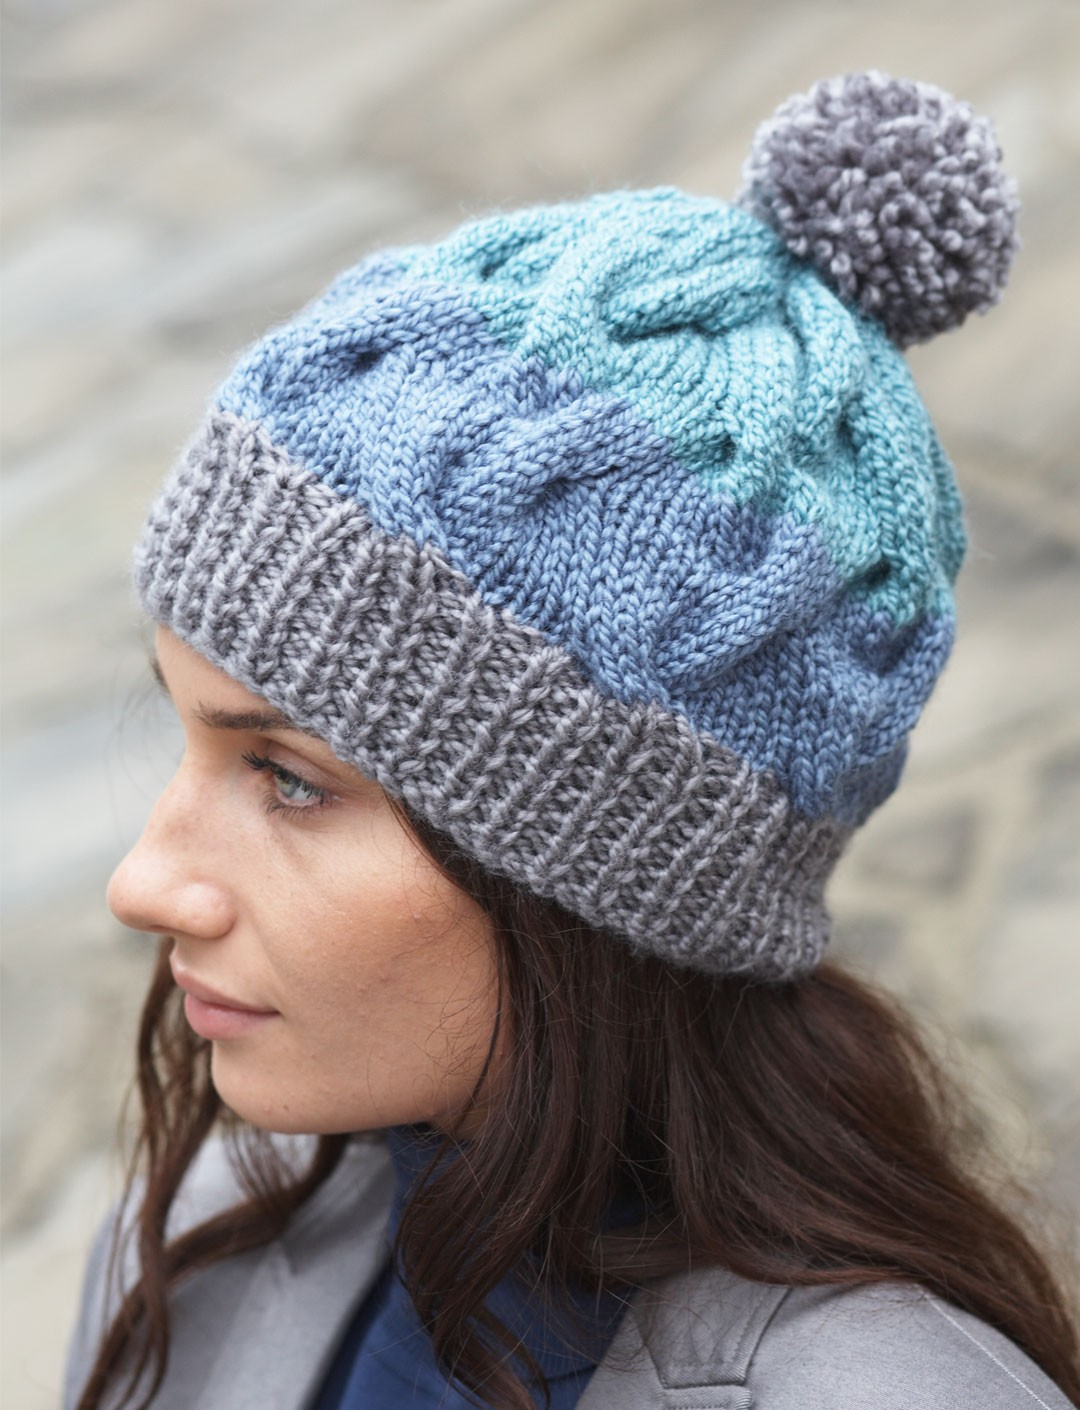 Free Knitting Patterns For Hats In The Round : Patons Striped Cable Hat, Knit Pattern Yarnspirations